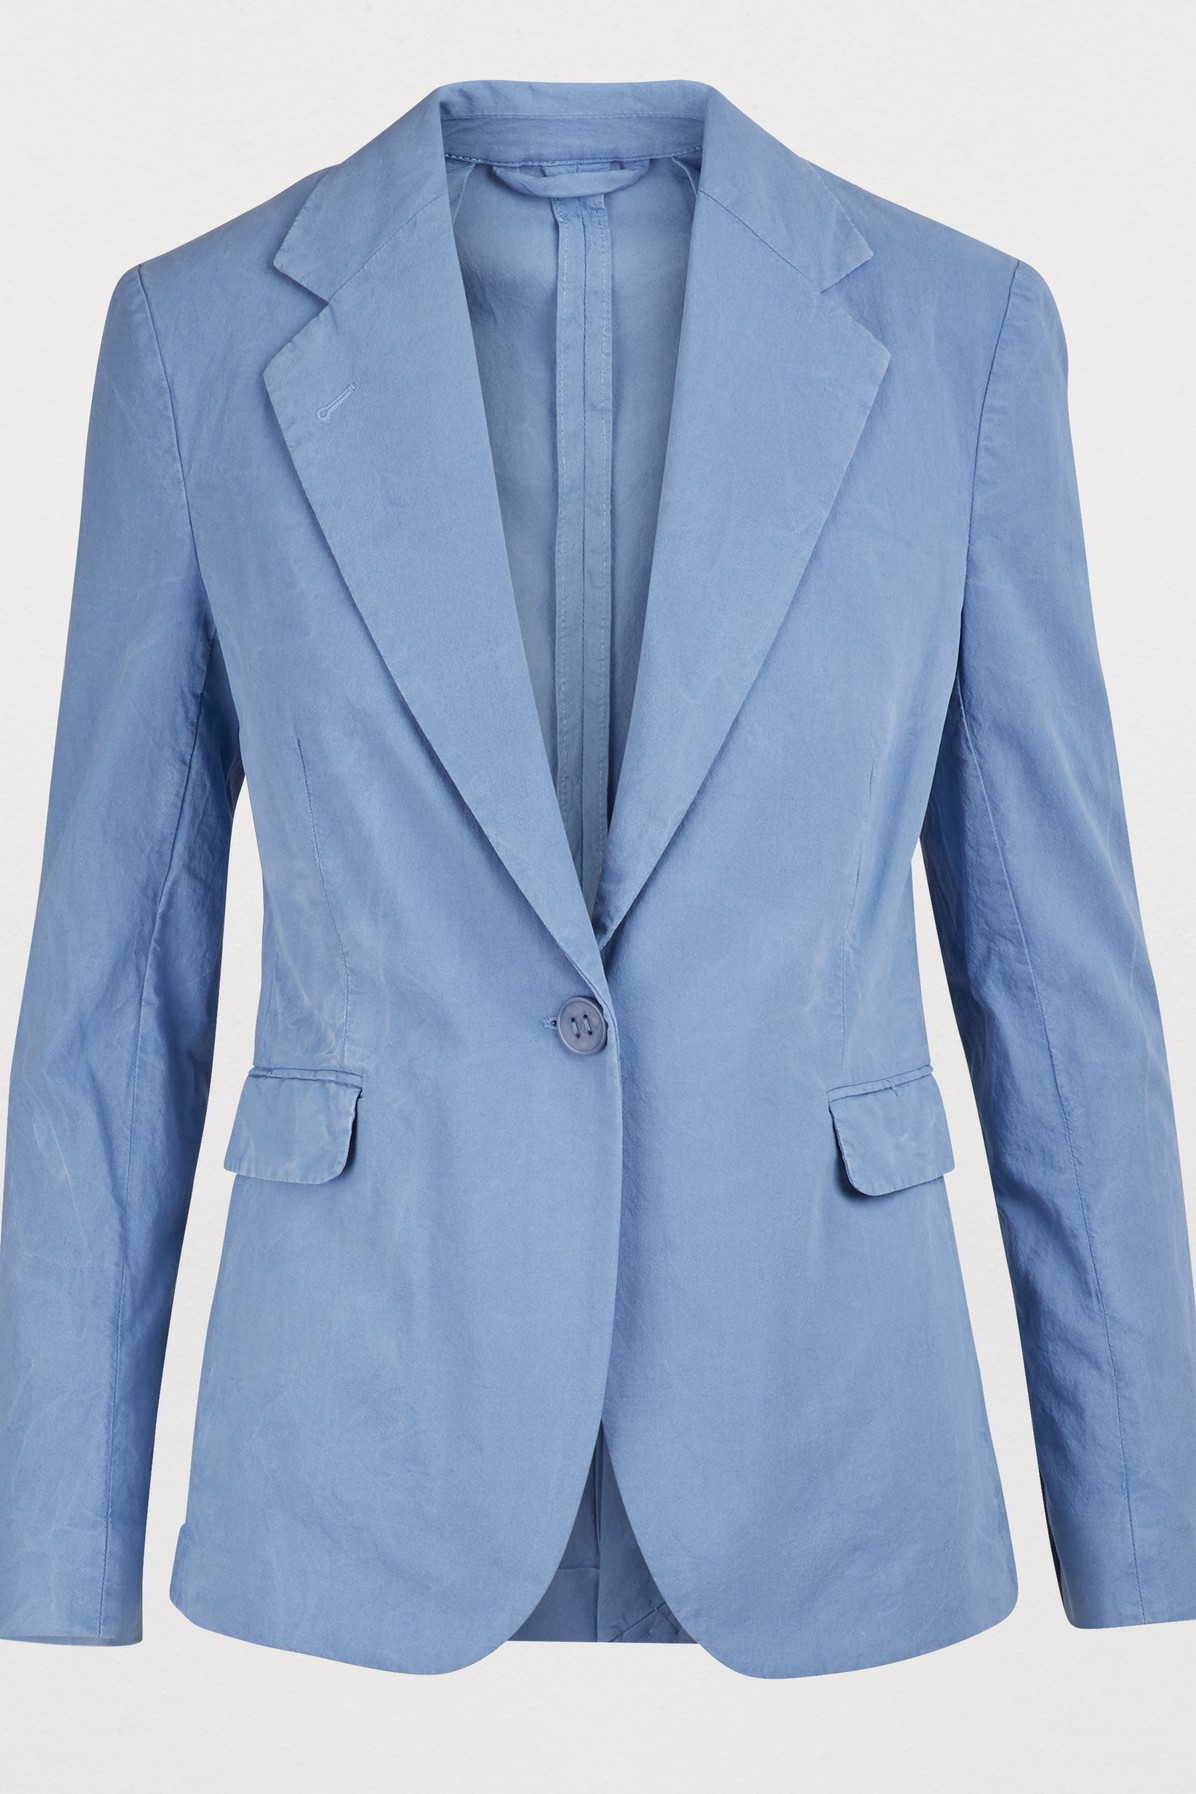 Acne Studios Cottons TAILORED JACKET